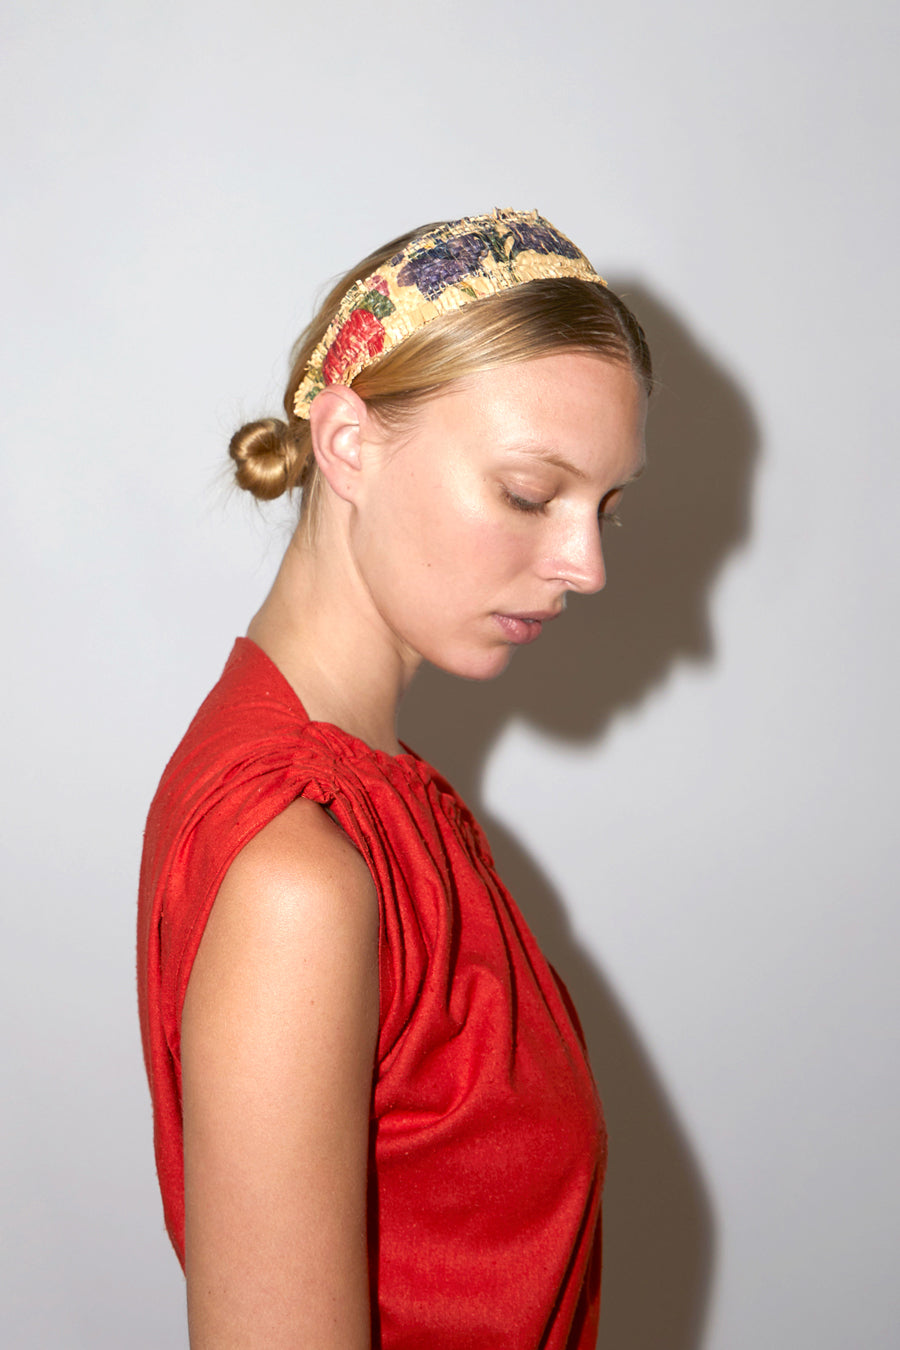 Maria La Rosa Hairband in Botanica